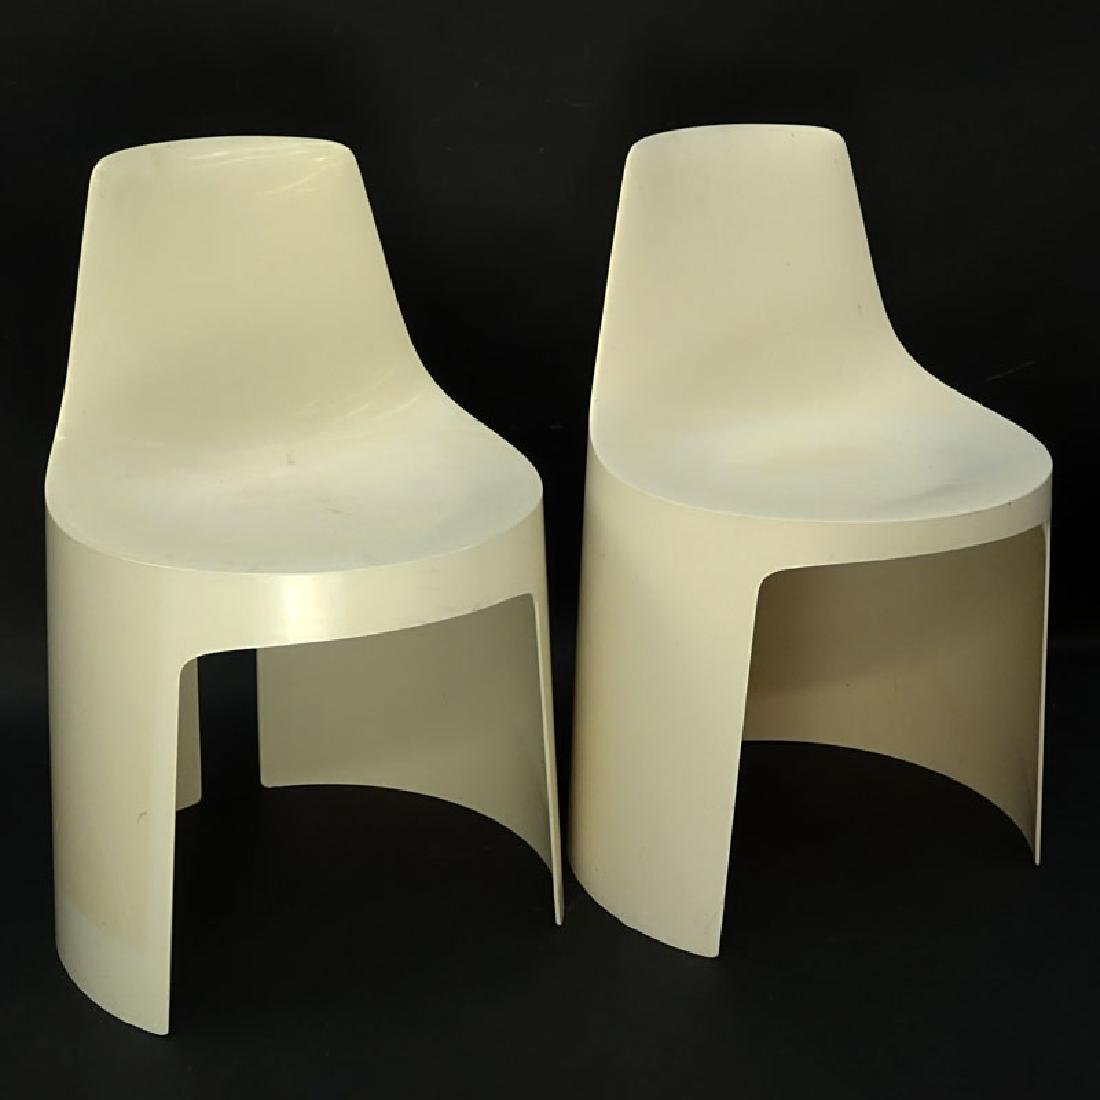 Pair of Mid Century Modern Molded Outdoor/Patio Chair.